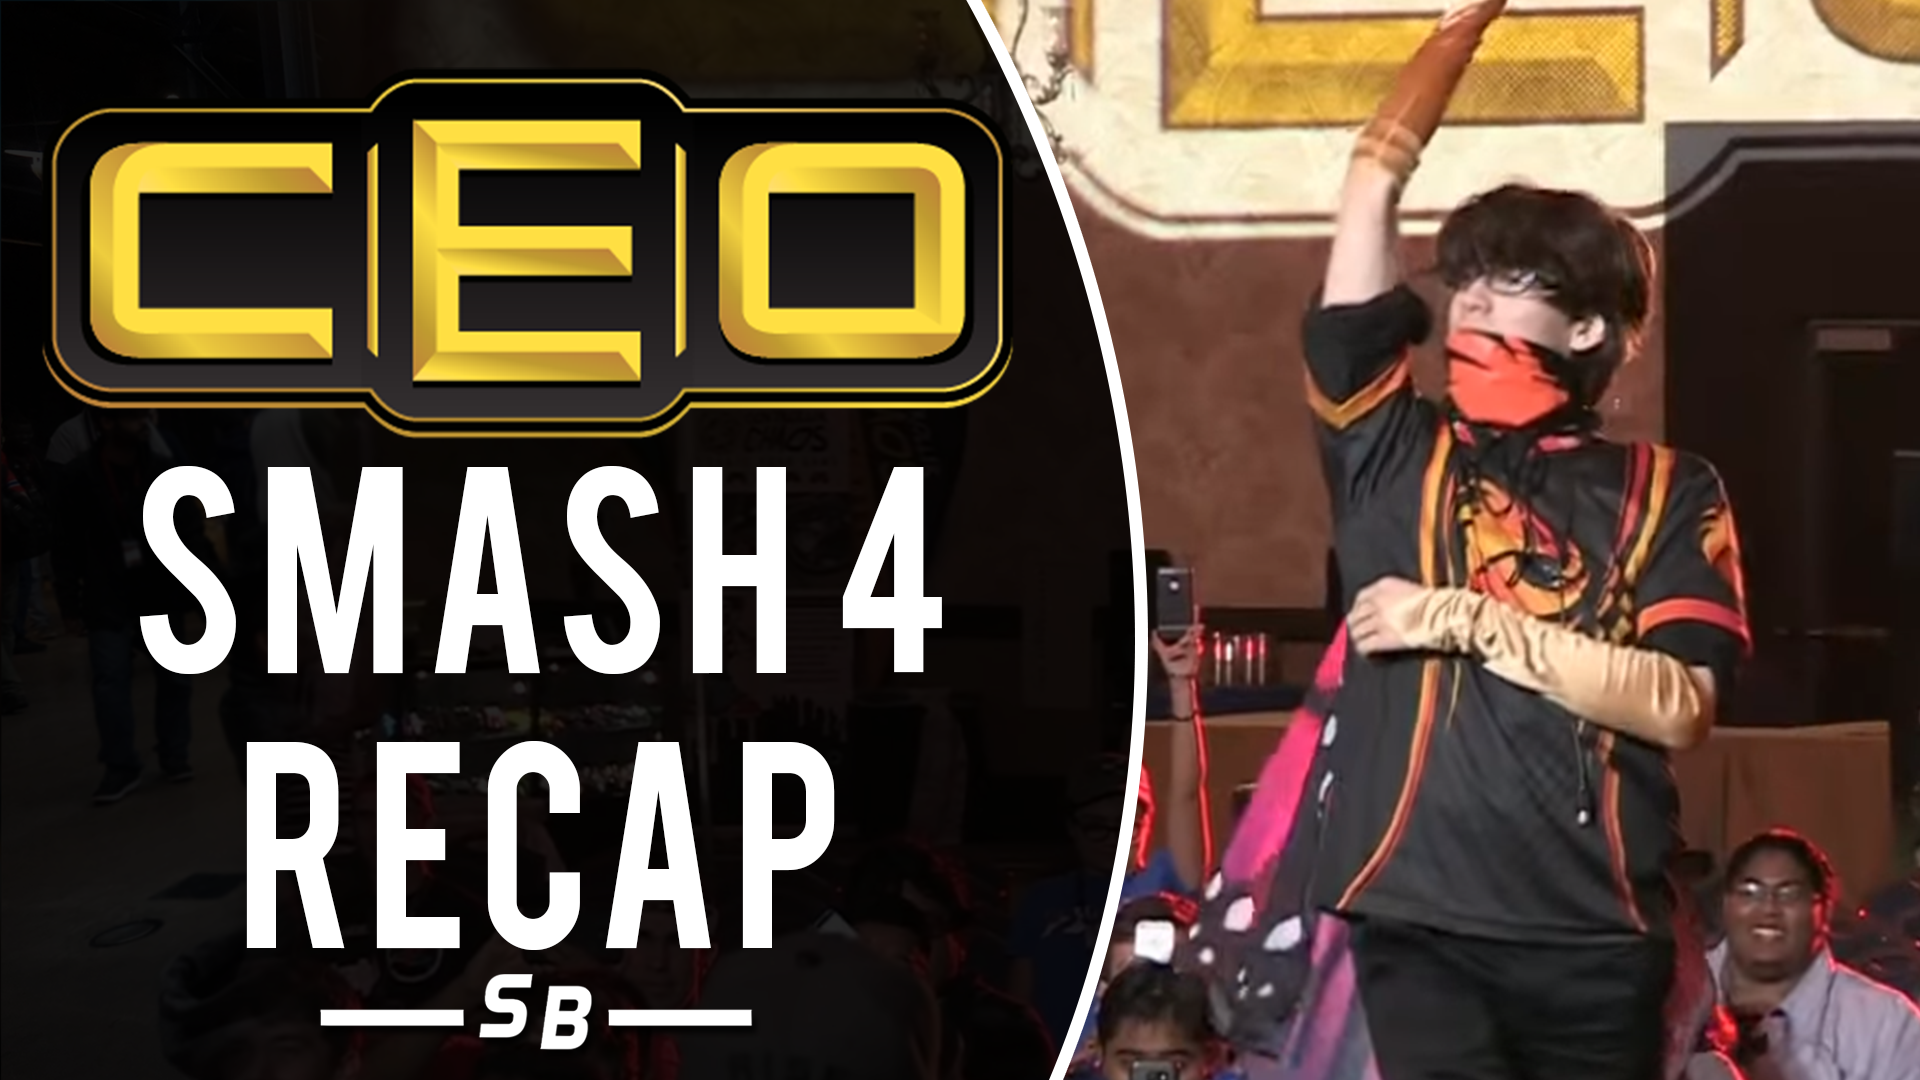 ceo_smash4_recap.png